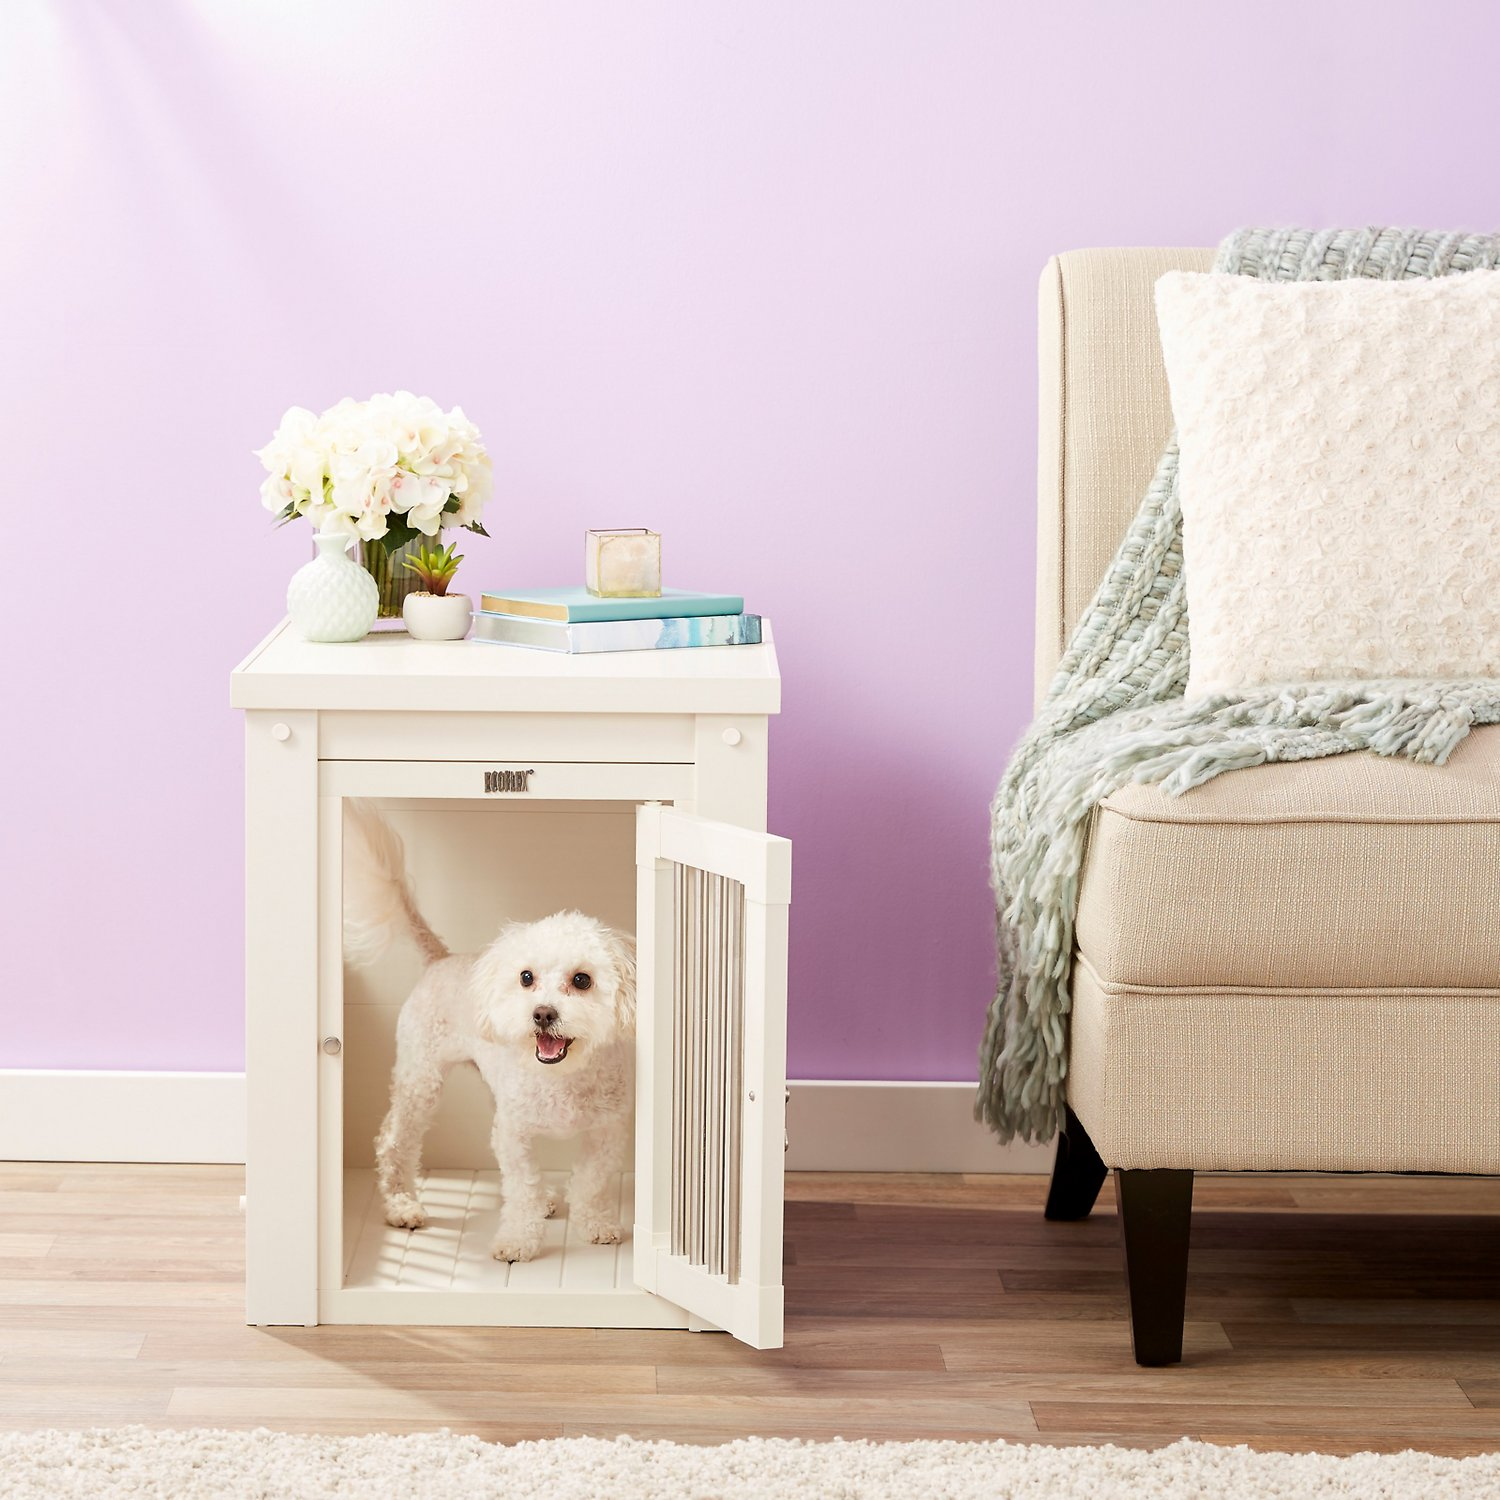 Furniture-style dog crate with a white dog inside in a living room